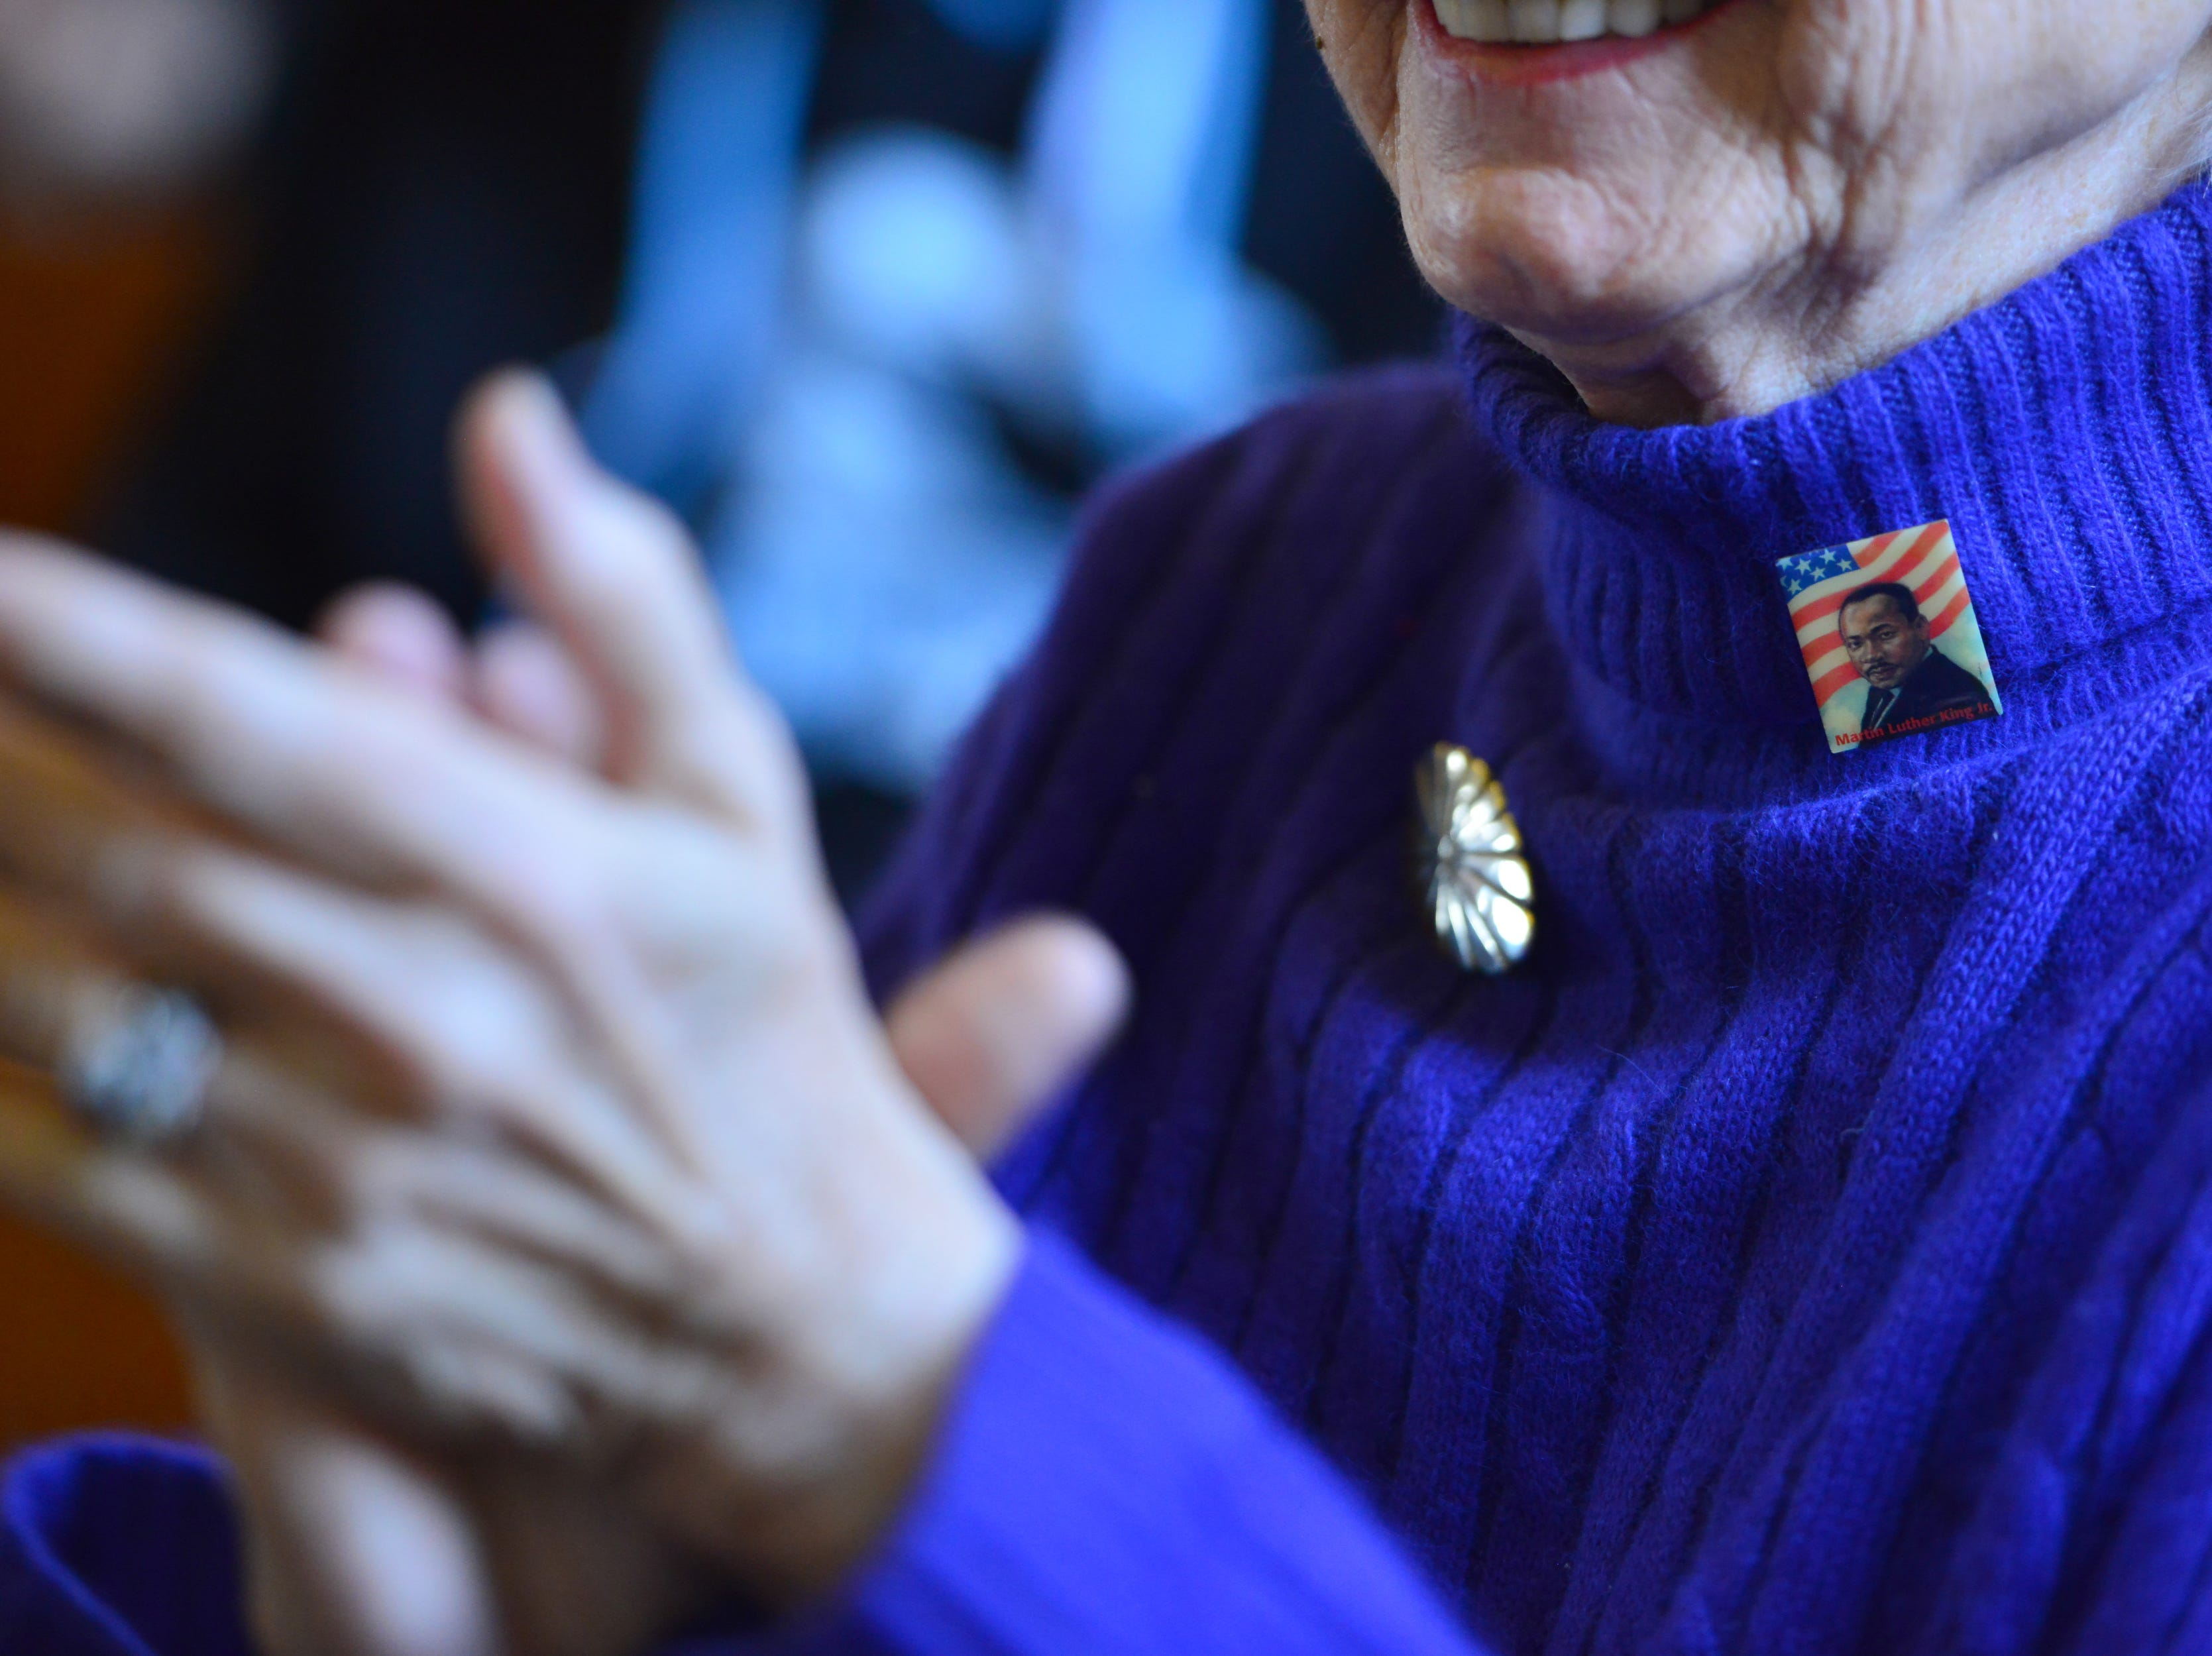 Jeri Cohn, of Ridgewood, N.J., sings at the start of the service with a pin of a portrait of Dr. King on her sweater. The Ridgewood United Methodist Church held its 37th year of honoring Dr. Martin Luther King, Jr. in Ridgewood, on Monday January 21, 2019. Area residents and religious leaders from many faiths attended the annual event.